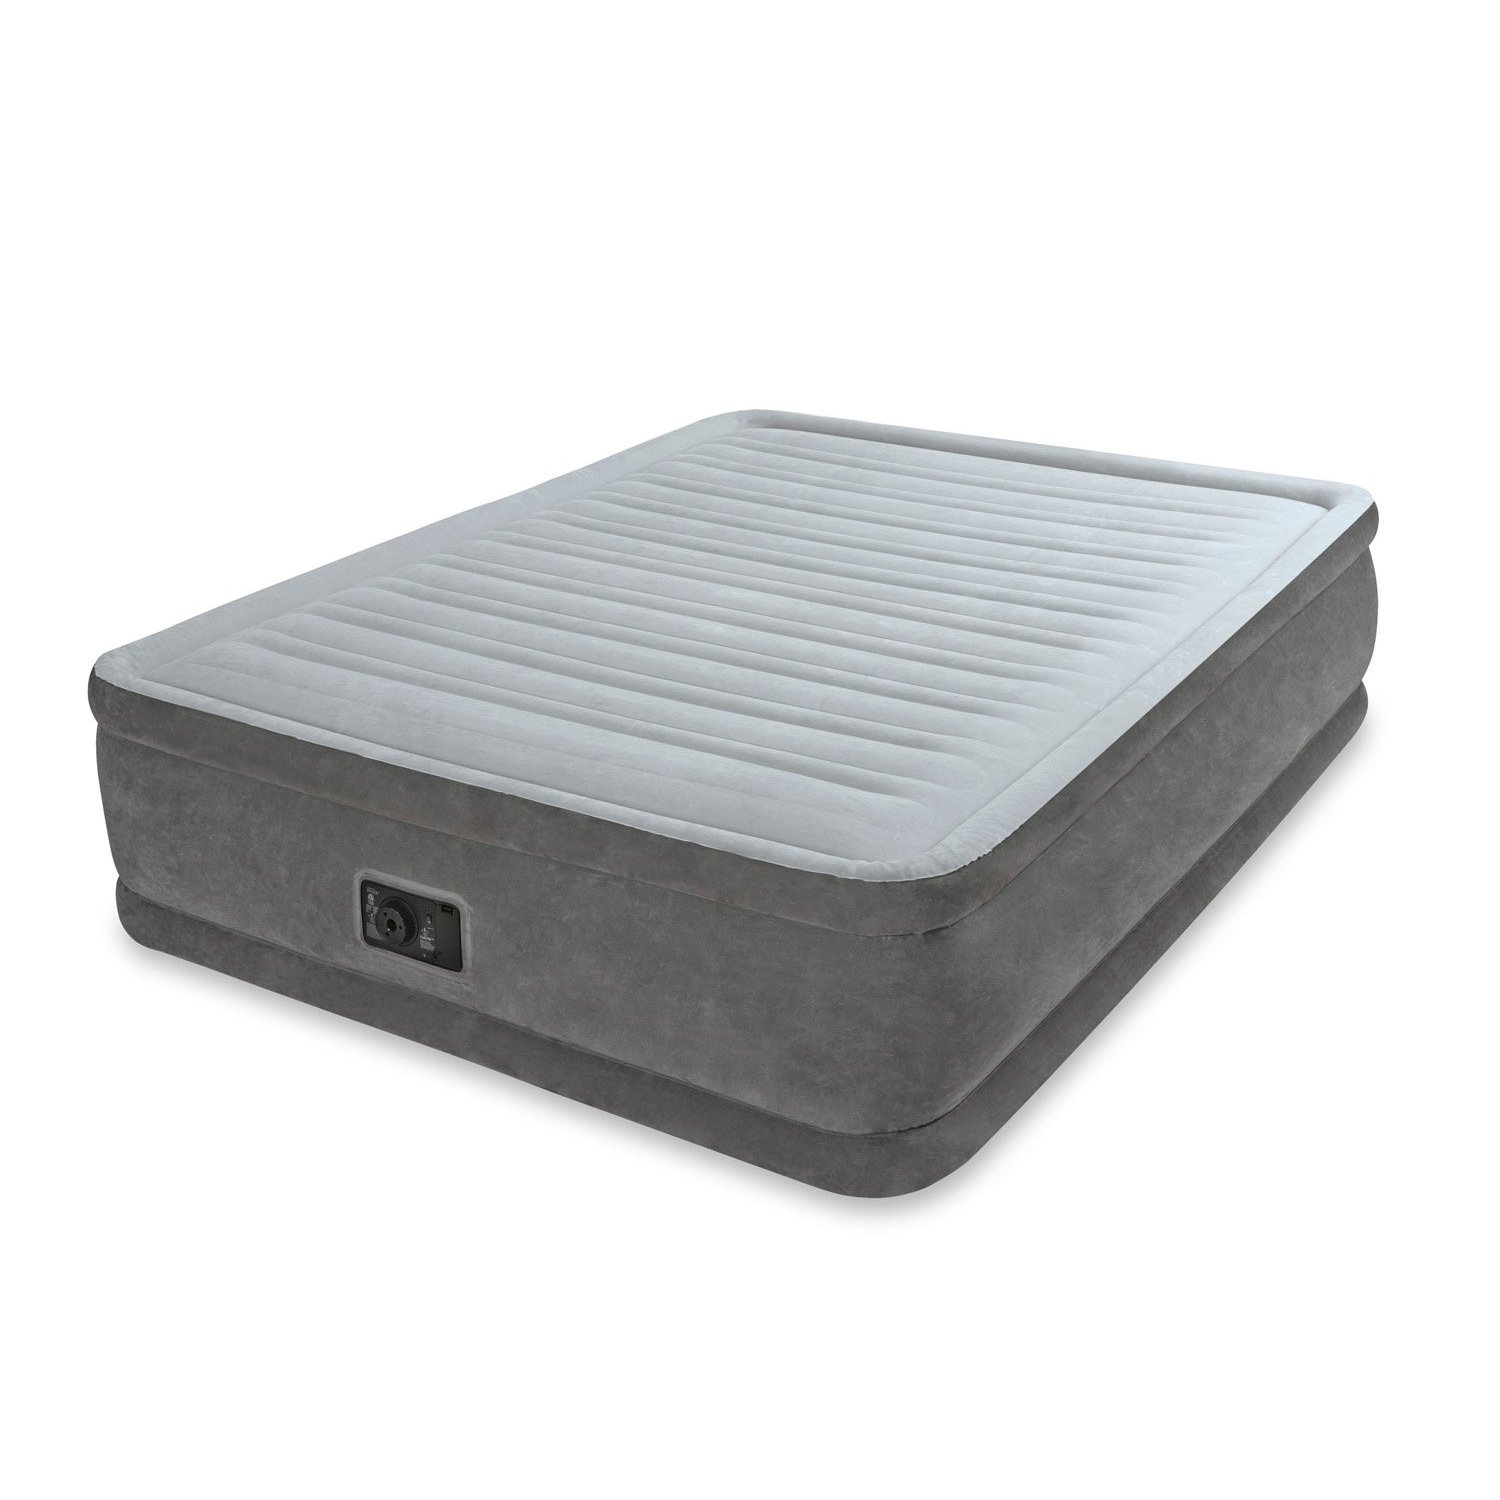 "Intex Queen 18"" Elevated Premium Comfort Plush Airbed Mattress with Built-in Pump by Intex"